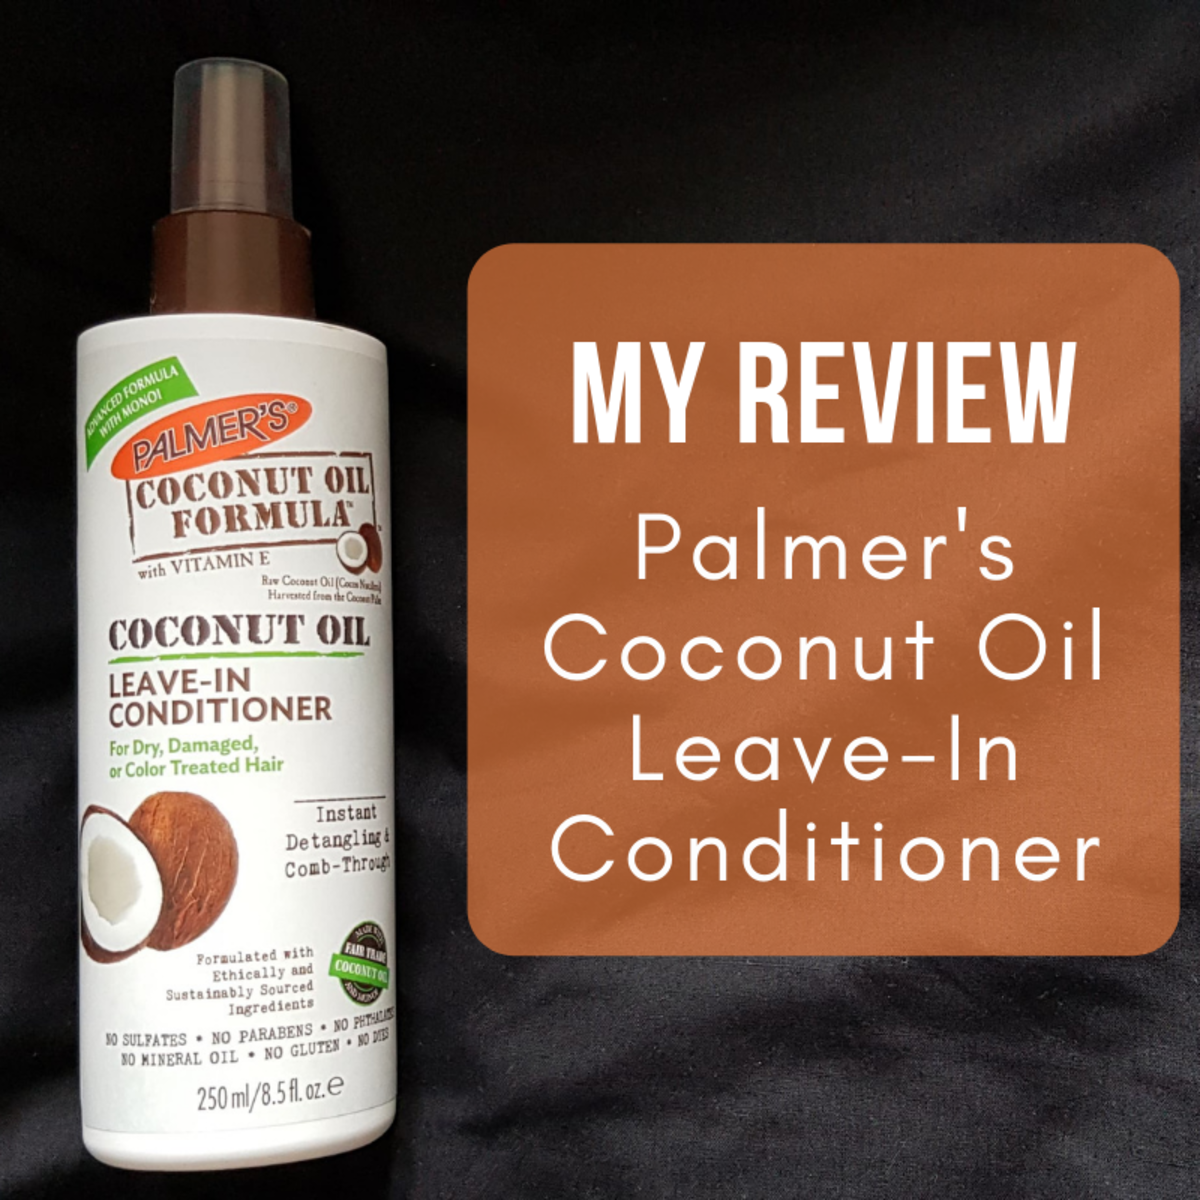 My review of Palmer's Coconut Oil Formula Leave-In Conditioner for dry, damaged or colour treated hair.